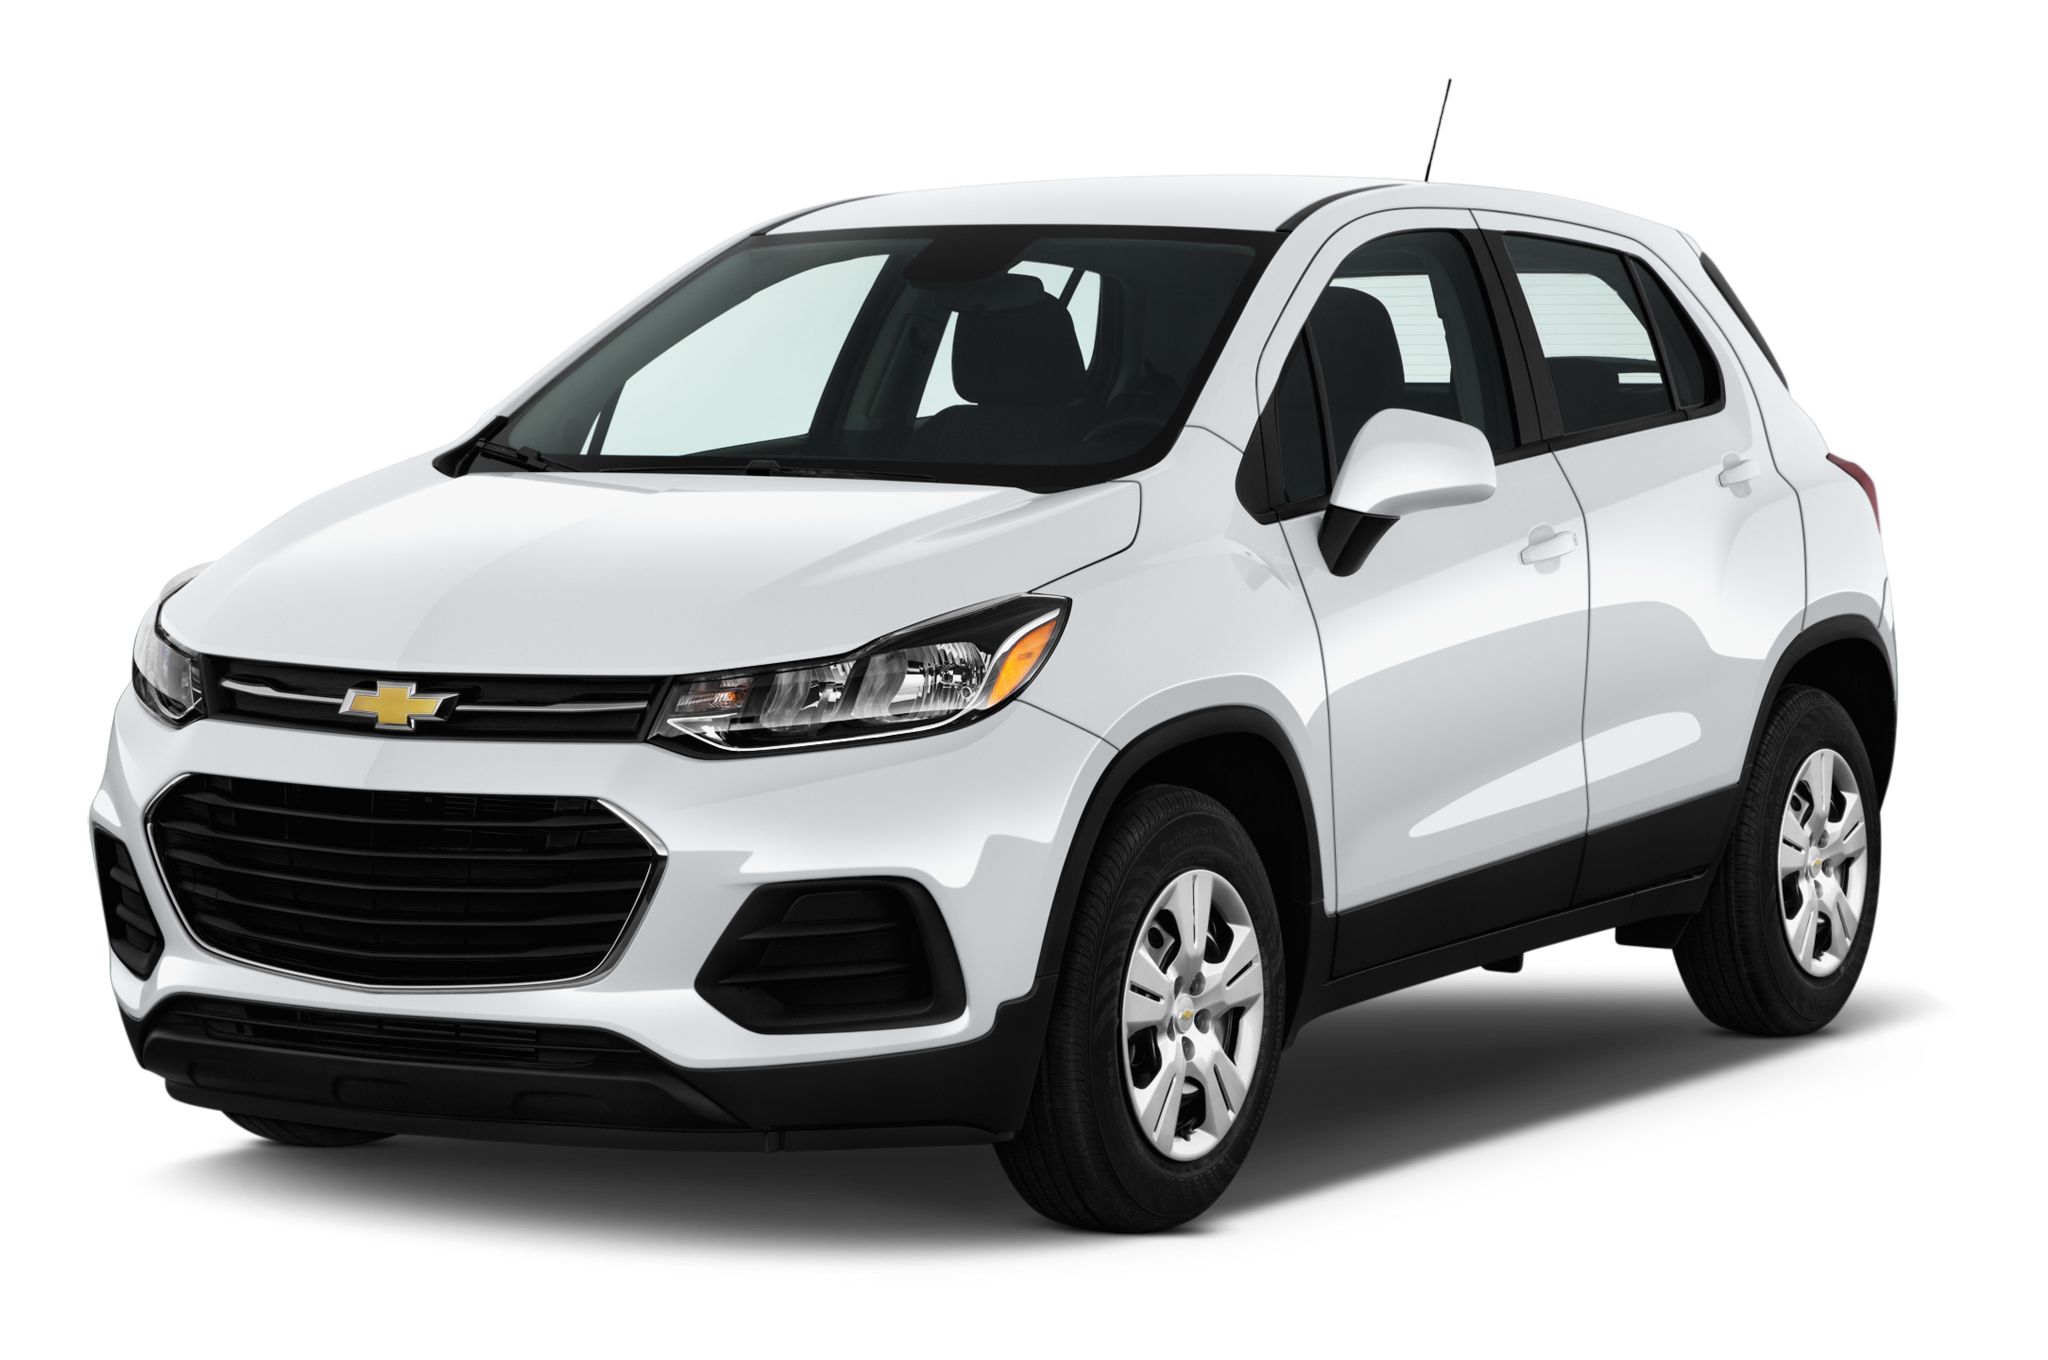 2017 chevrolet trax overview msn autos. Black Bedroom Furniture Sets. Home Design Ideas